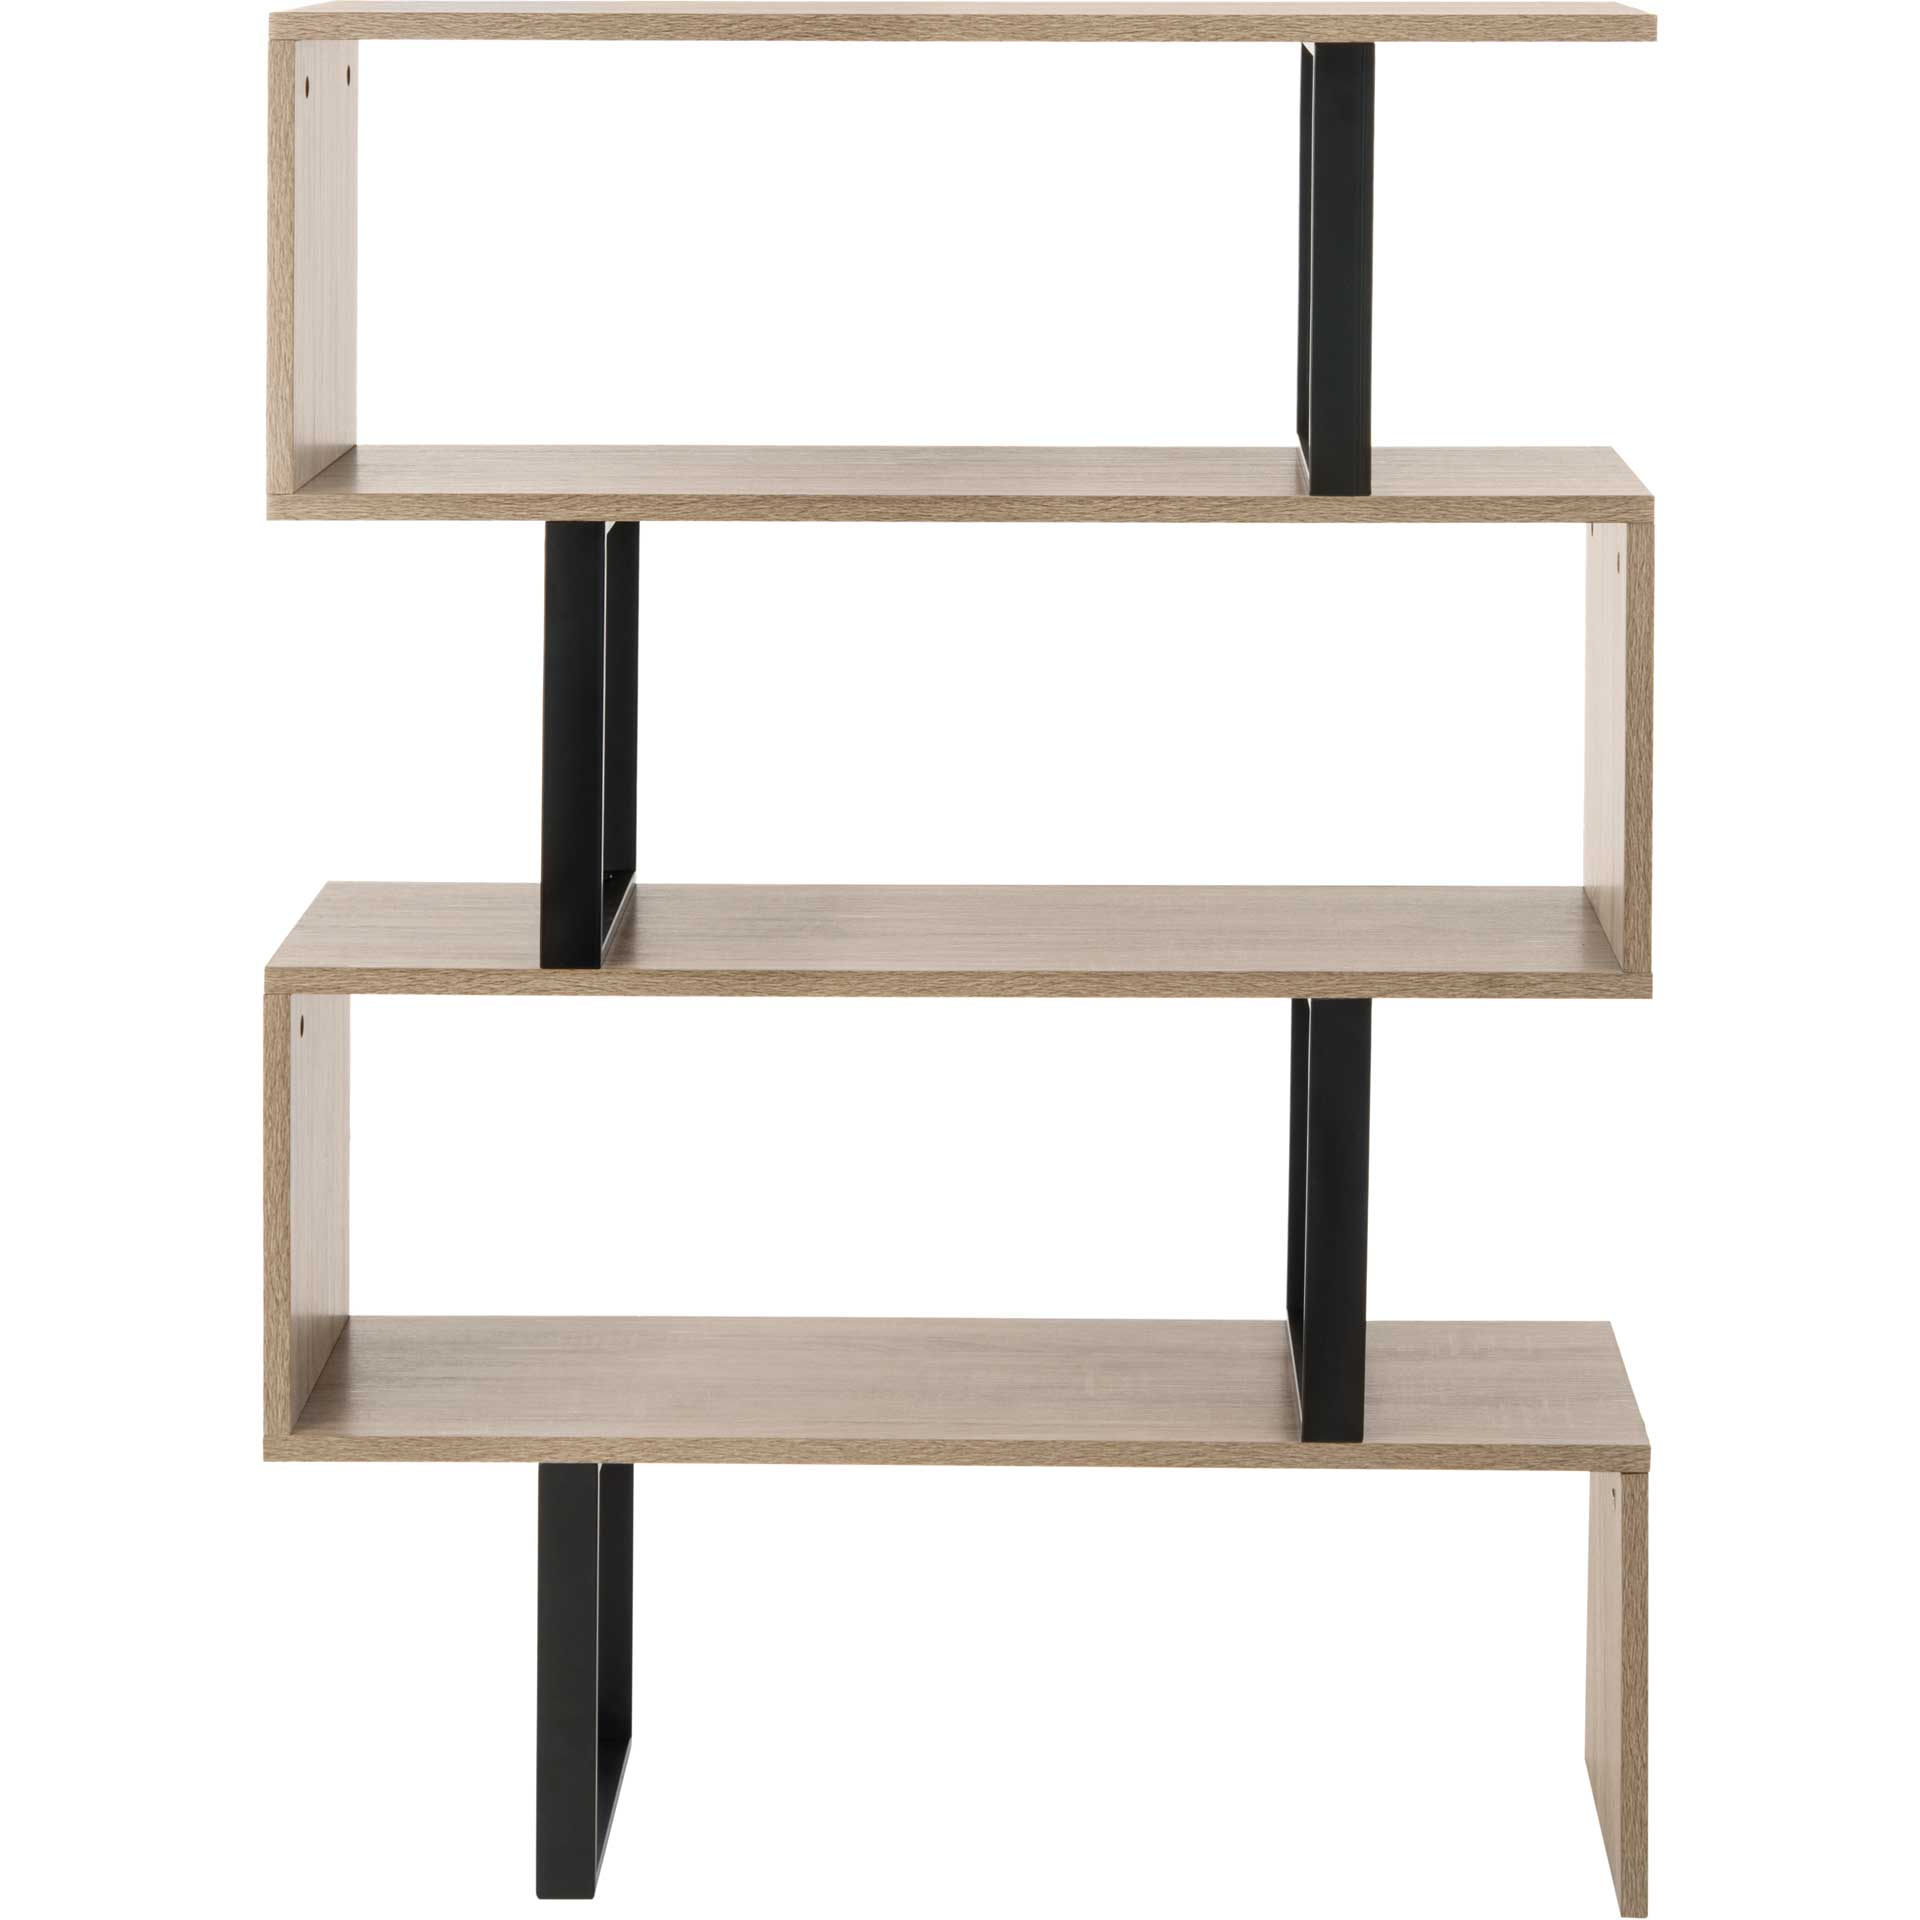 Lonny Retro Mid Century Wood Etagere Oak/Black